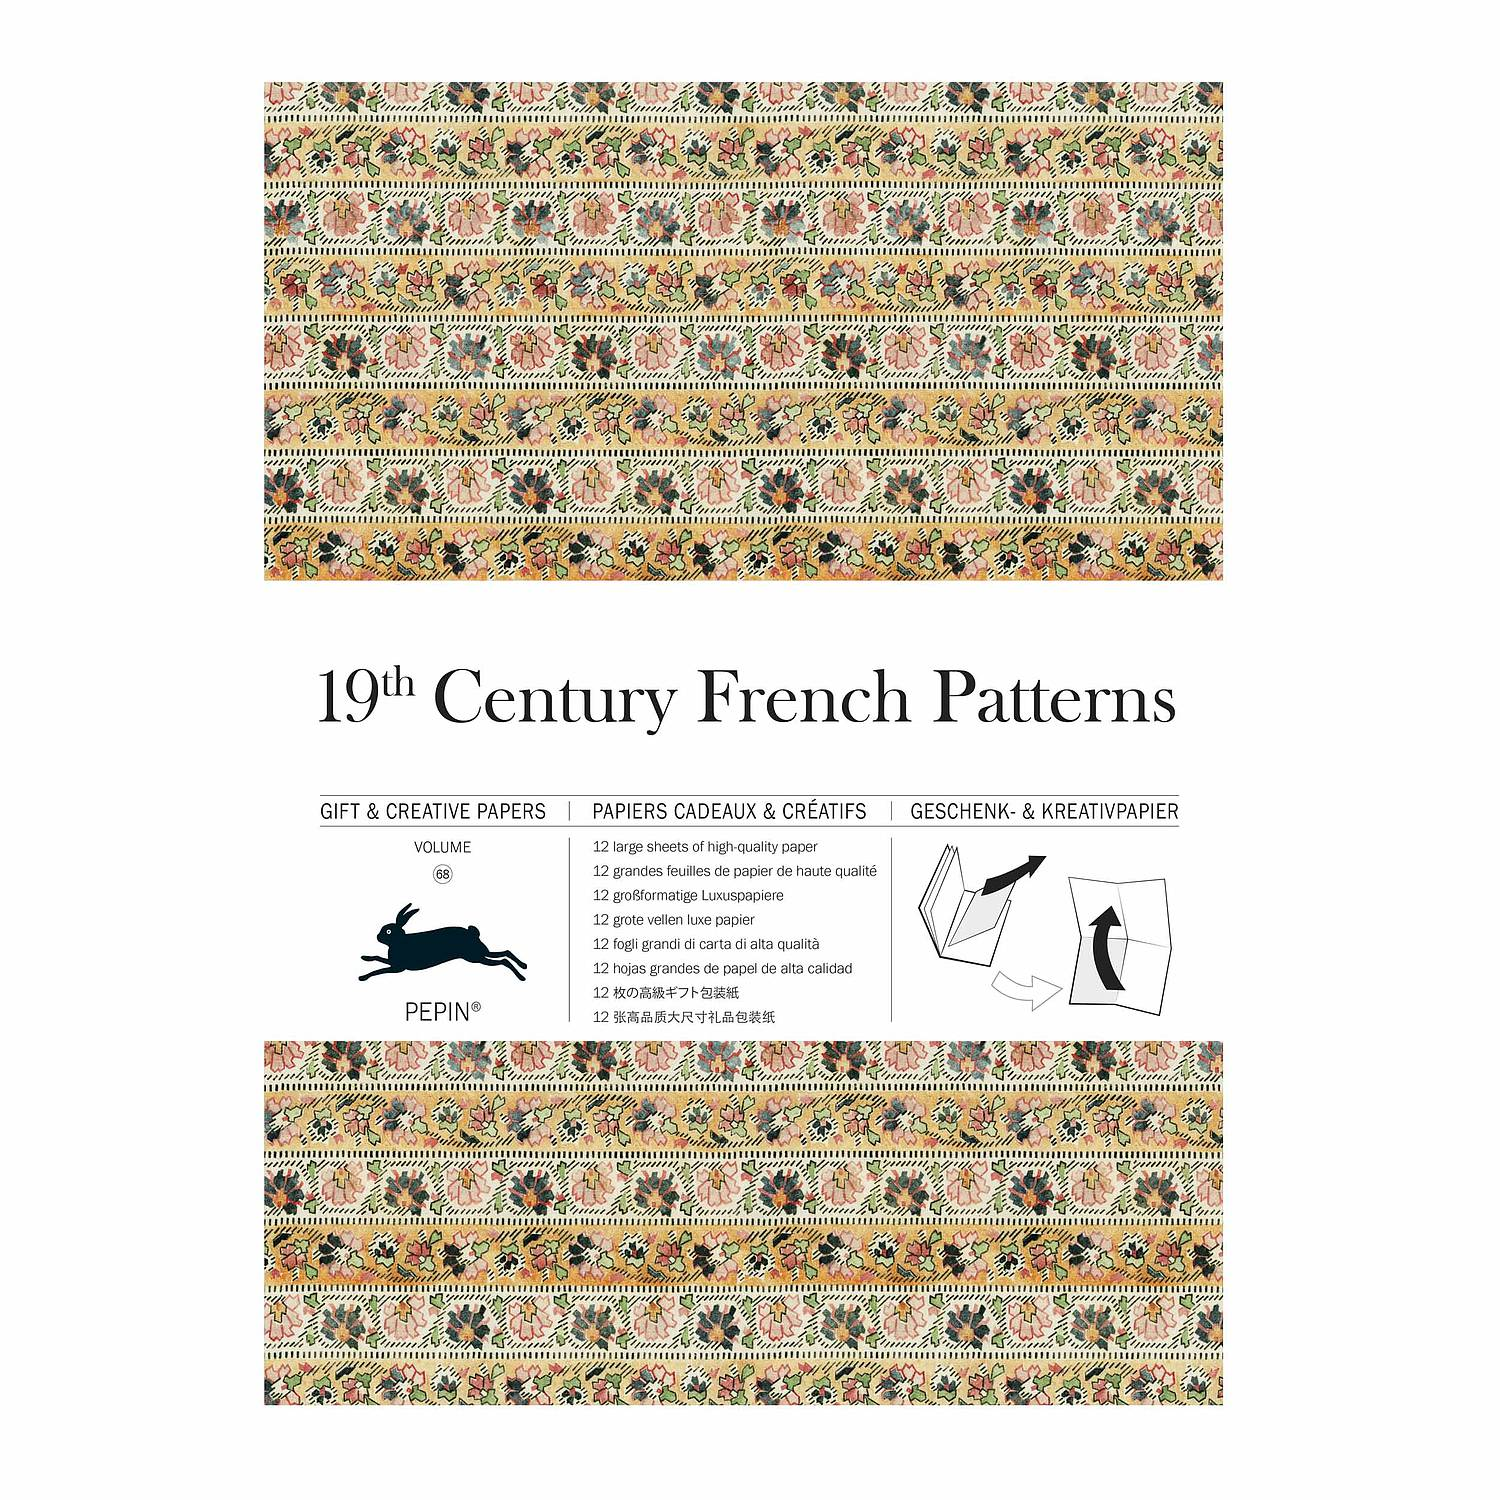 Gift Wrap Book 68 - 19th Century French Patterns - Geschenkpapier